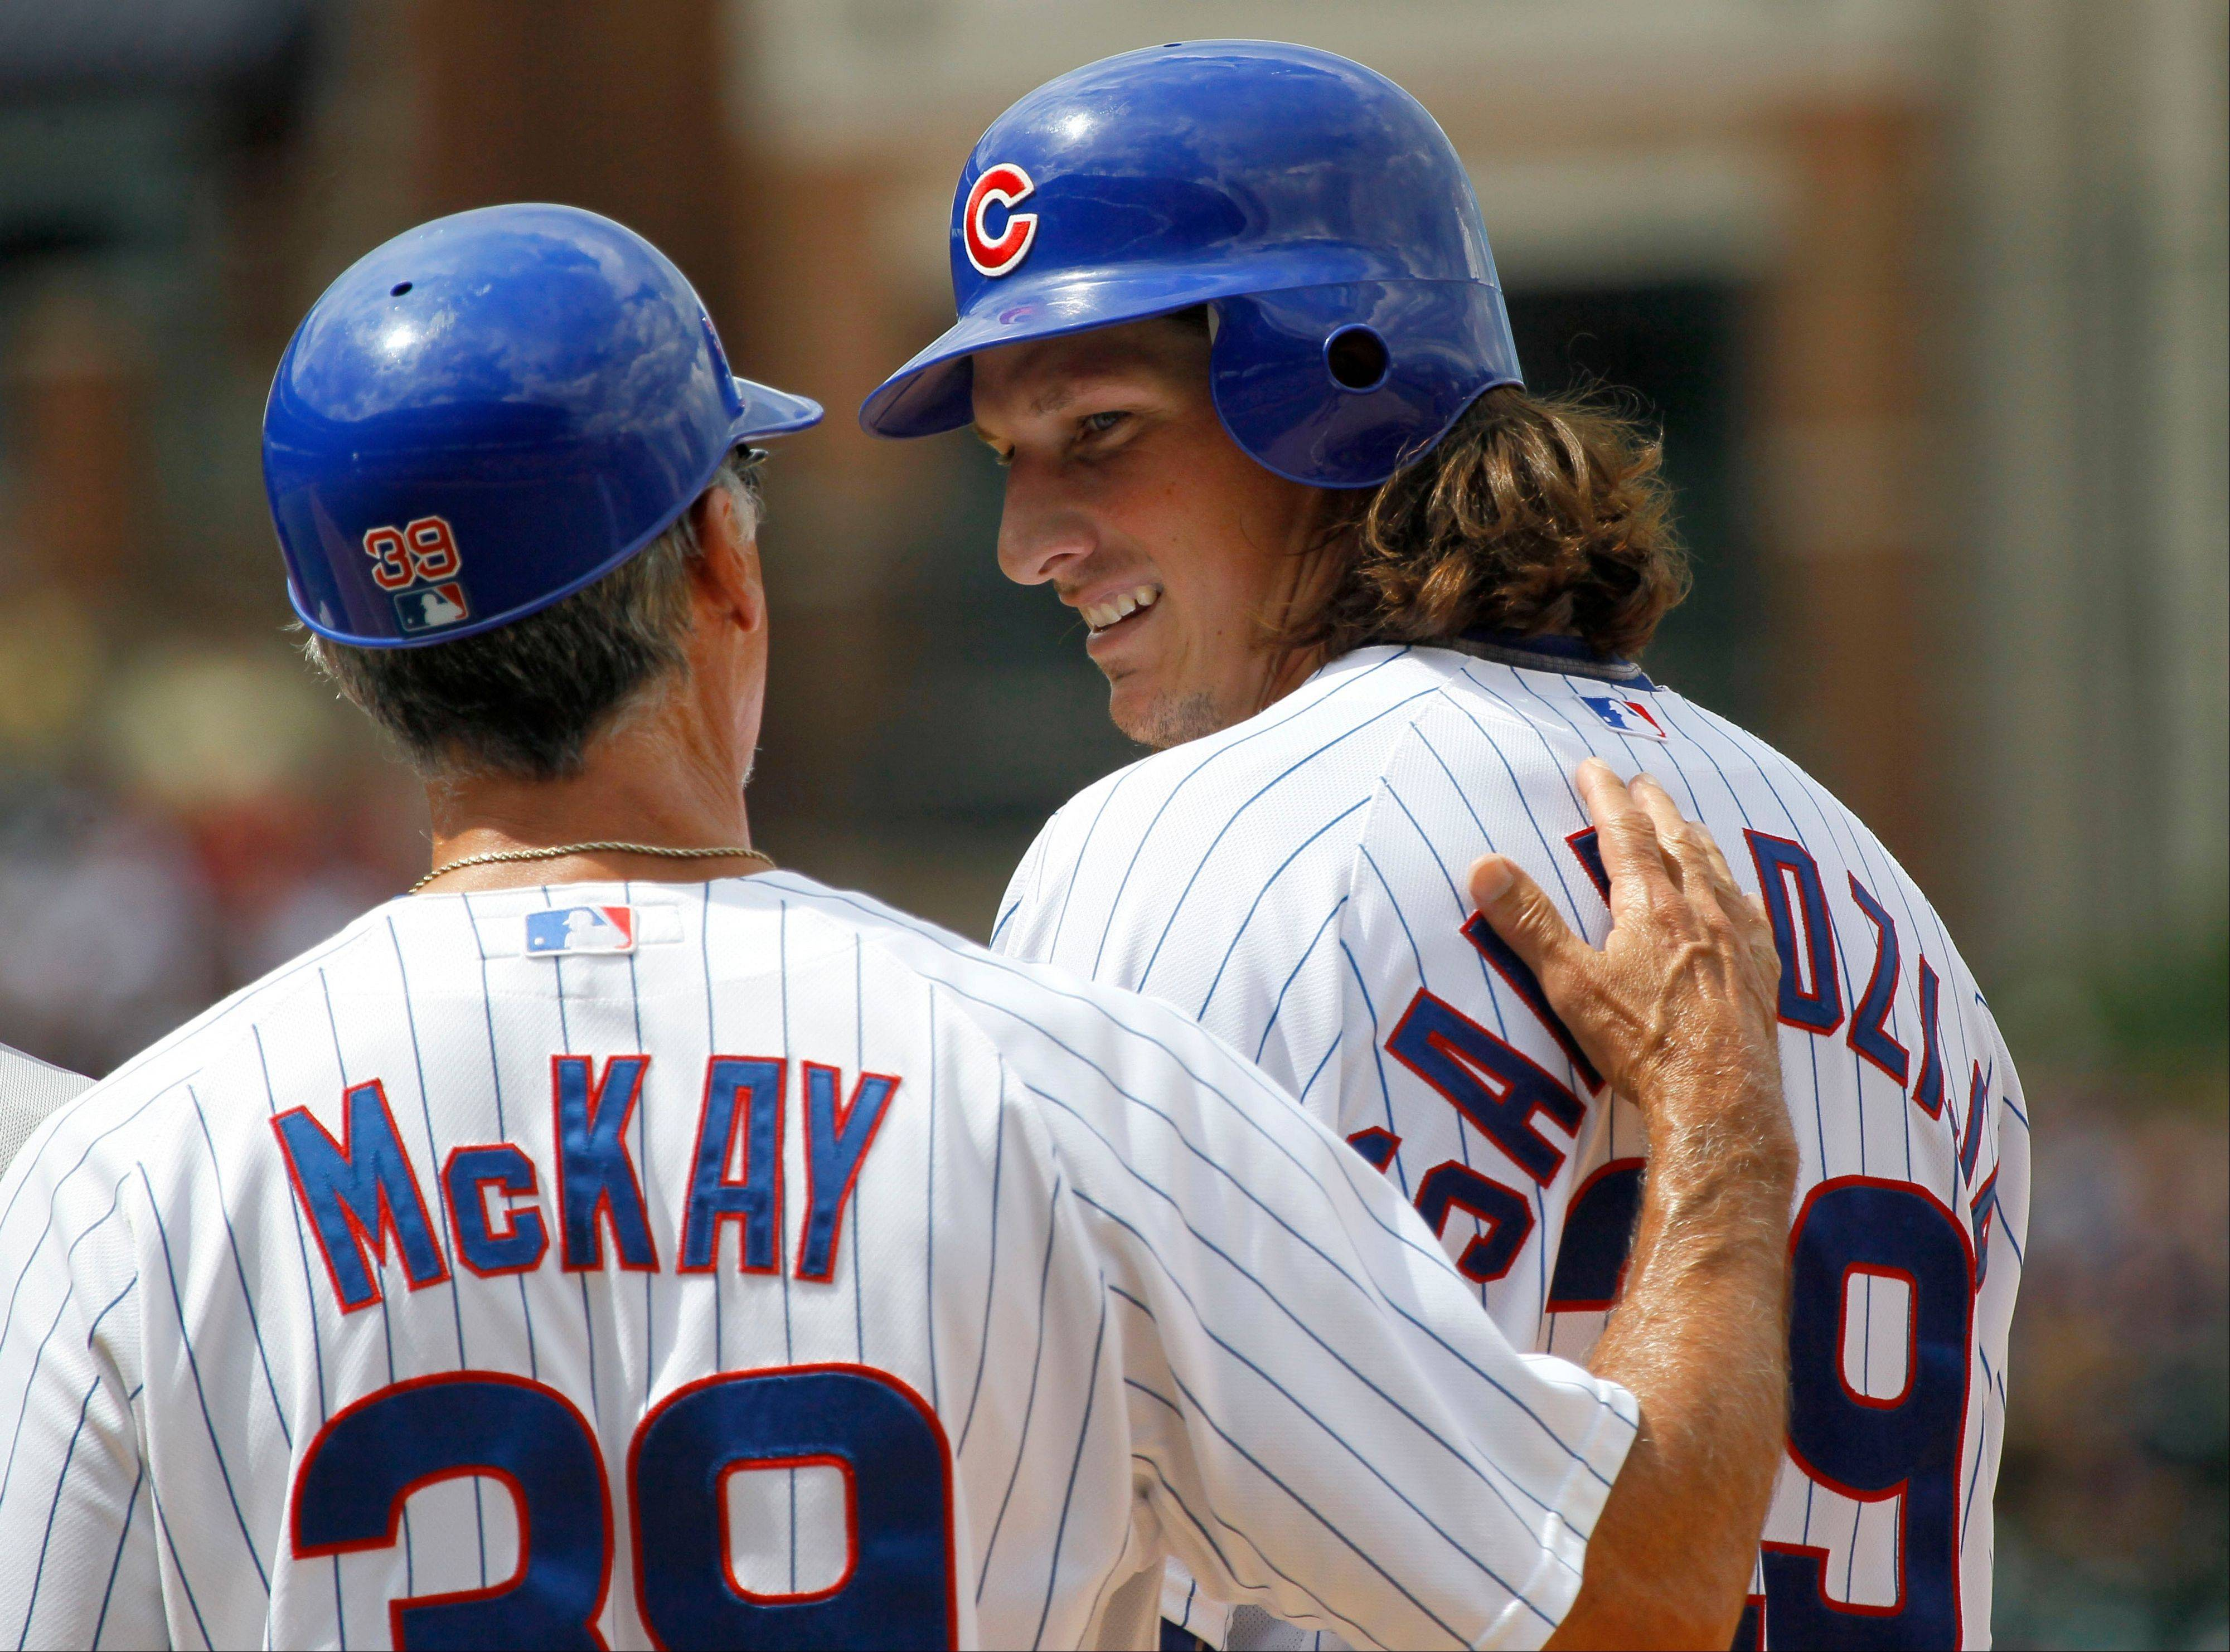 The Cubs' Jeff Samardzija smiles at first-base coach Dave McKay after his RBI single in the fifth inning Tuesday at Wrigley Field.